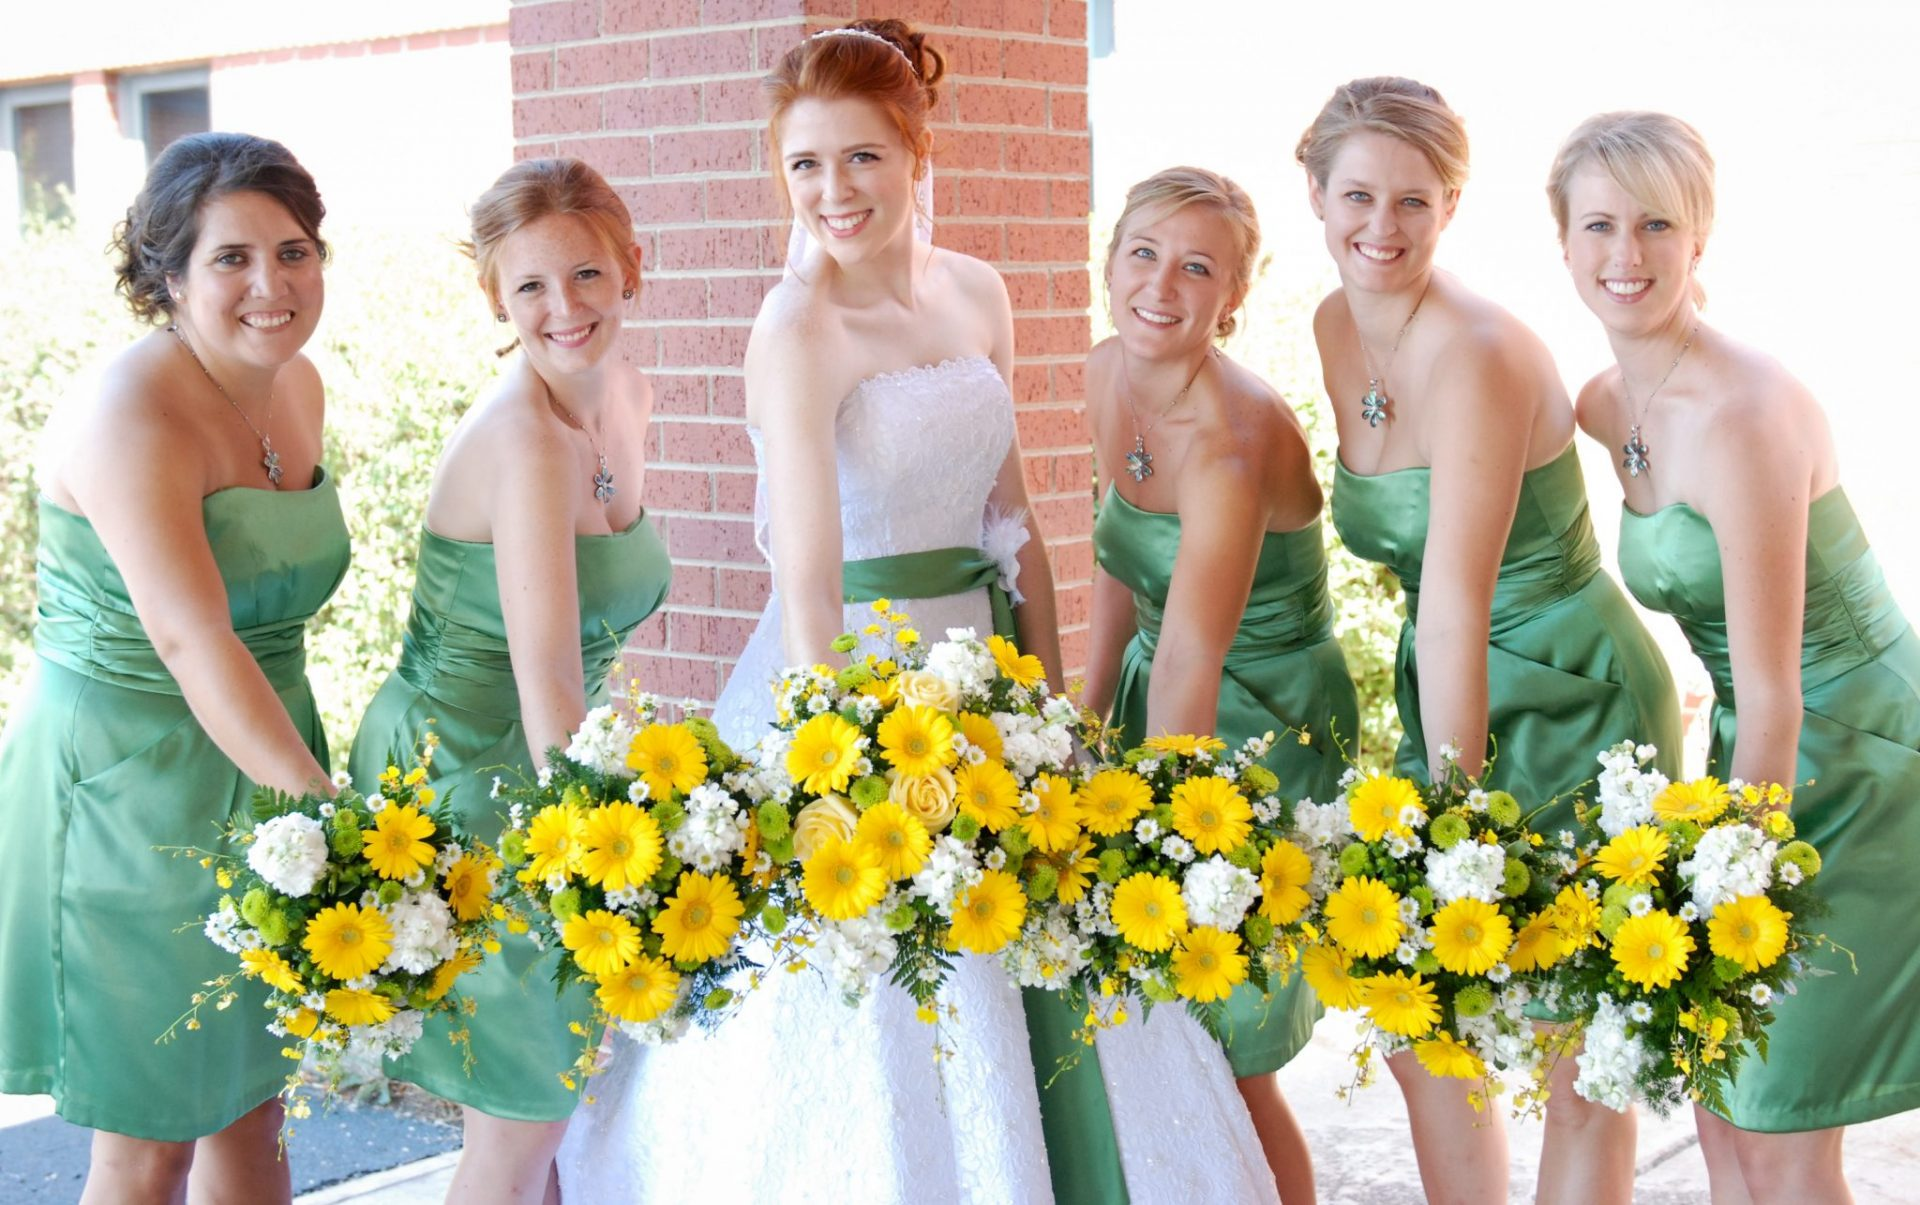 Yellow gerbera daisy bouquets with green and white accents.